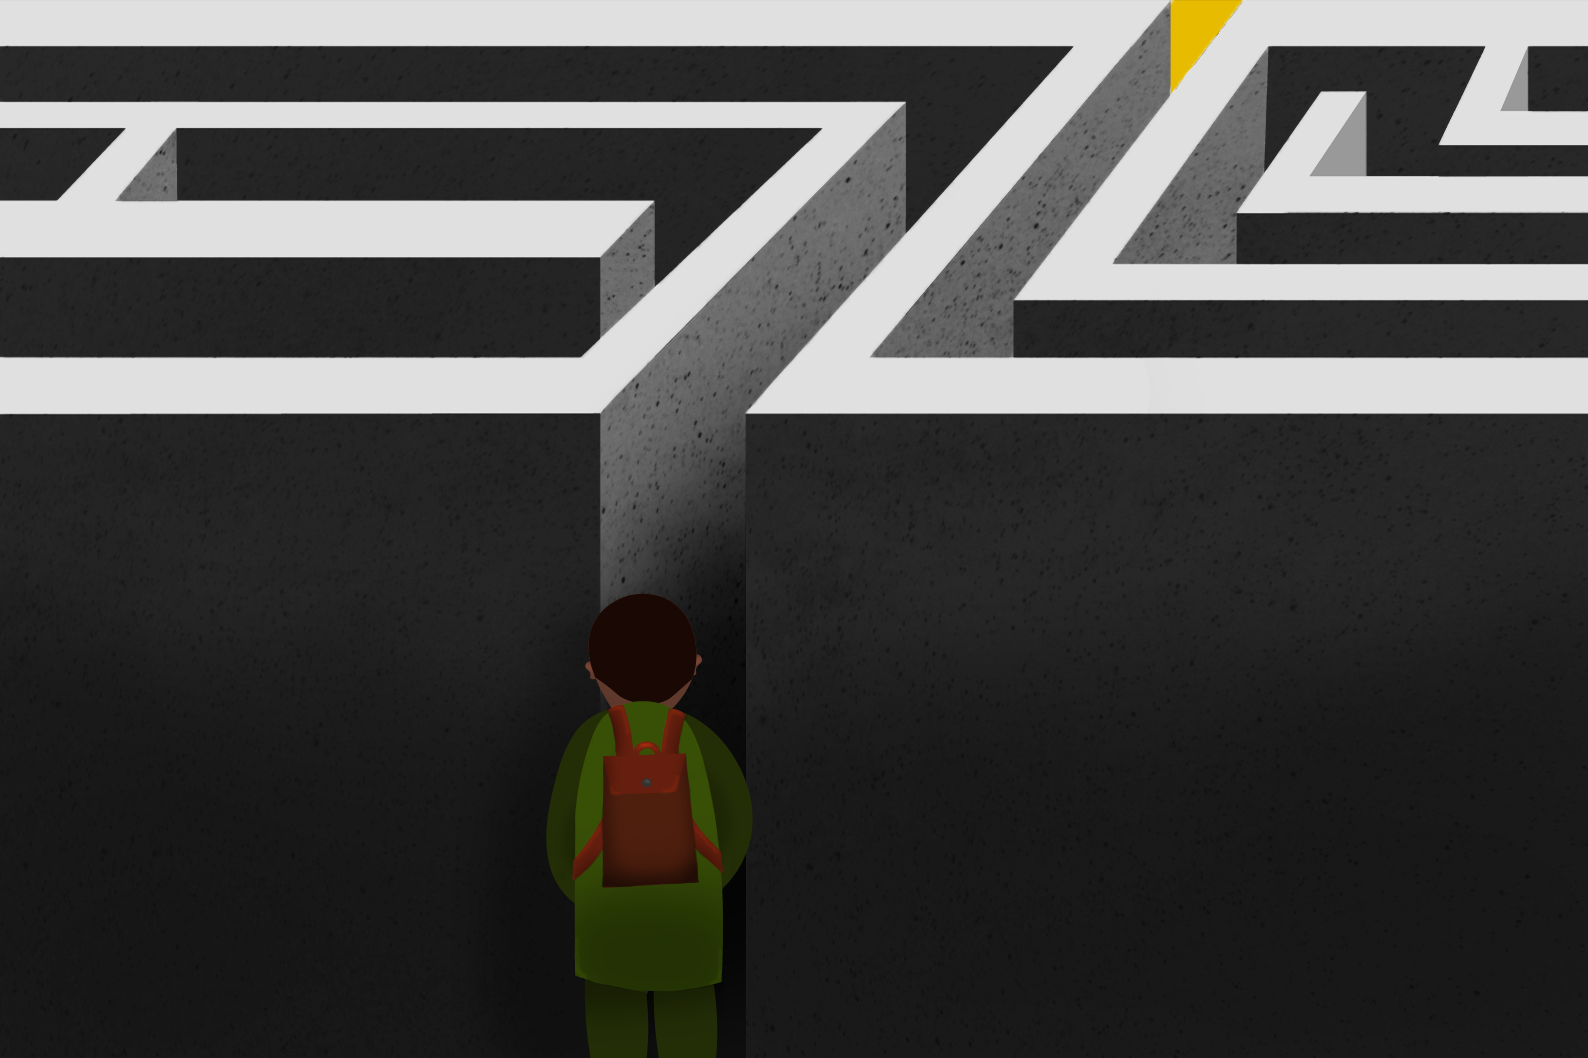 A person is standing at the edge of a maze with no visible exit.